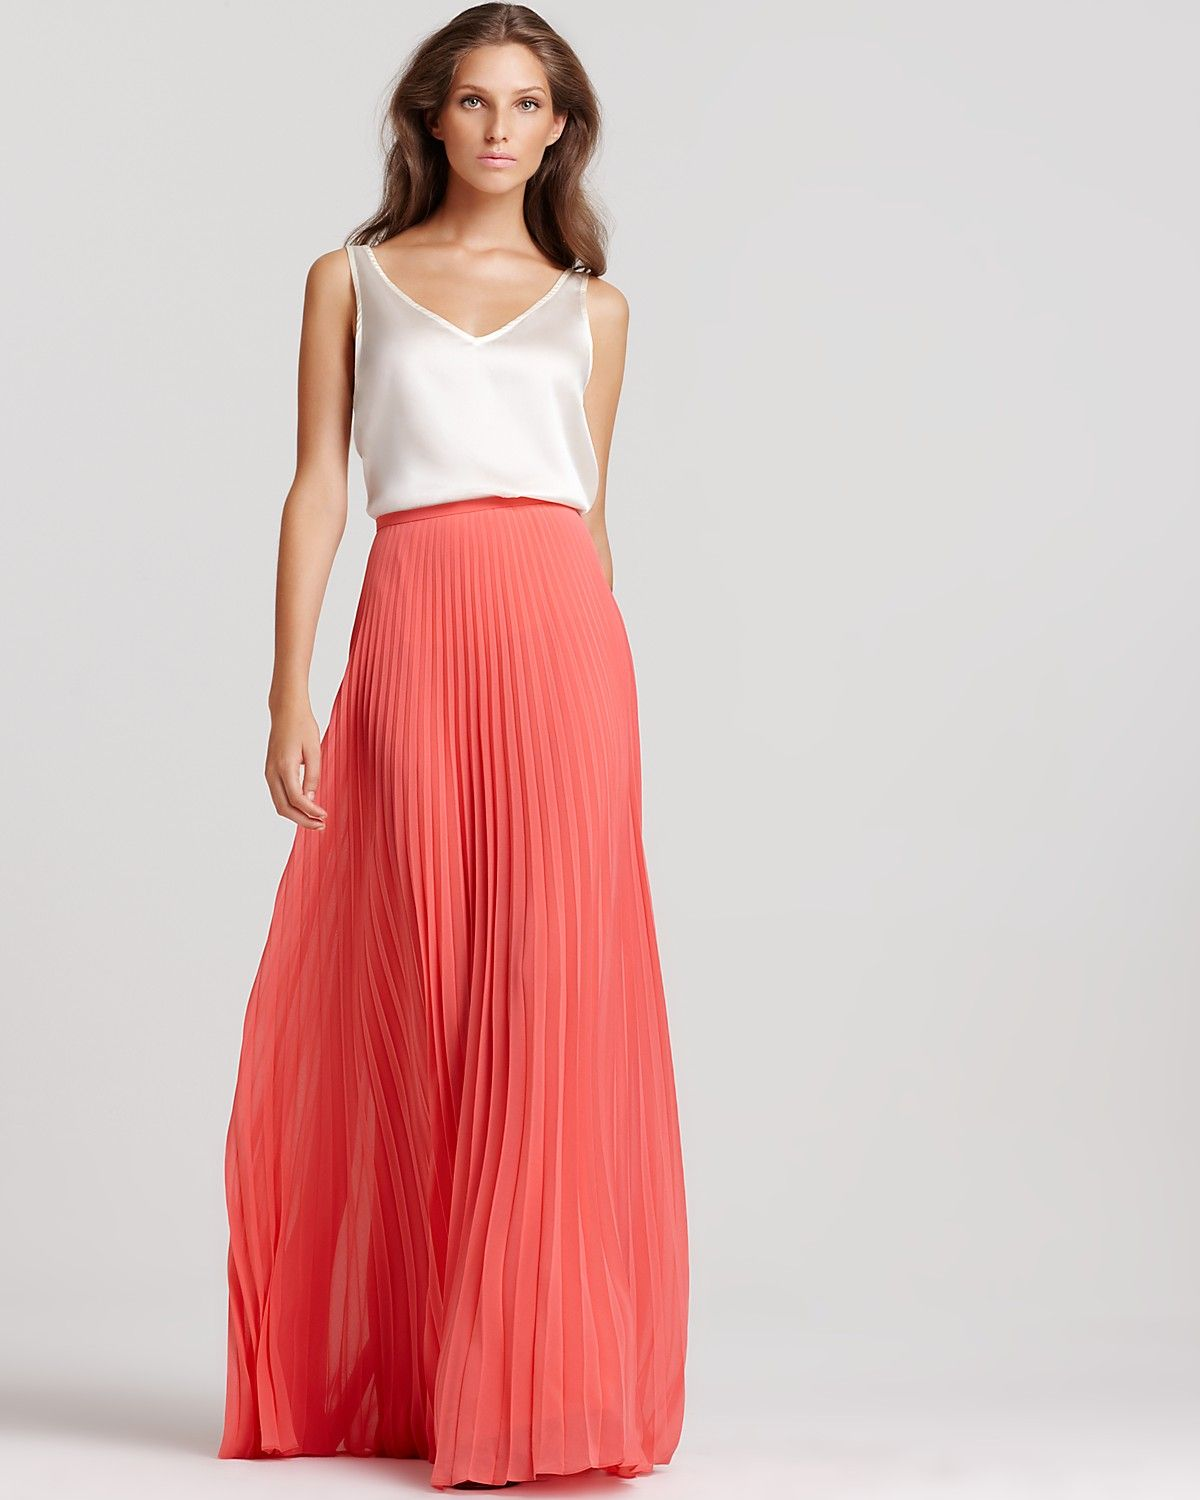 Satin Camisole   Pleated Maxi Skirt | Women: Style | Pinterest ...